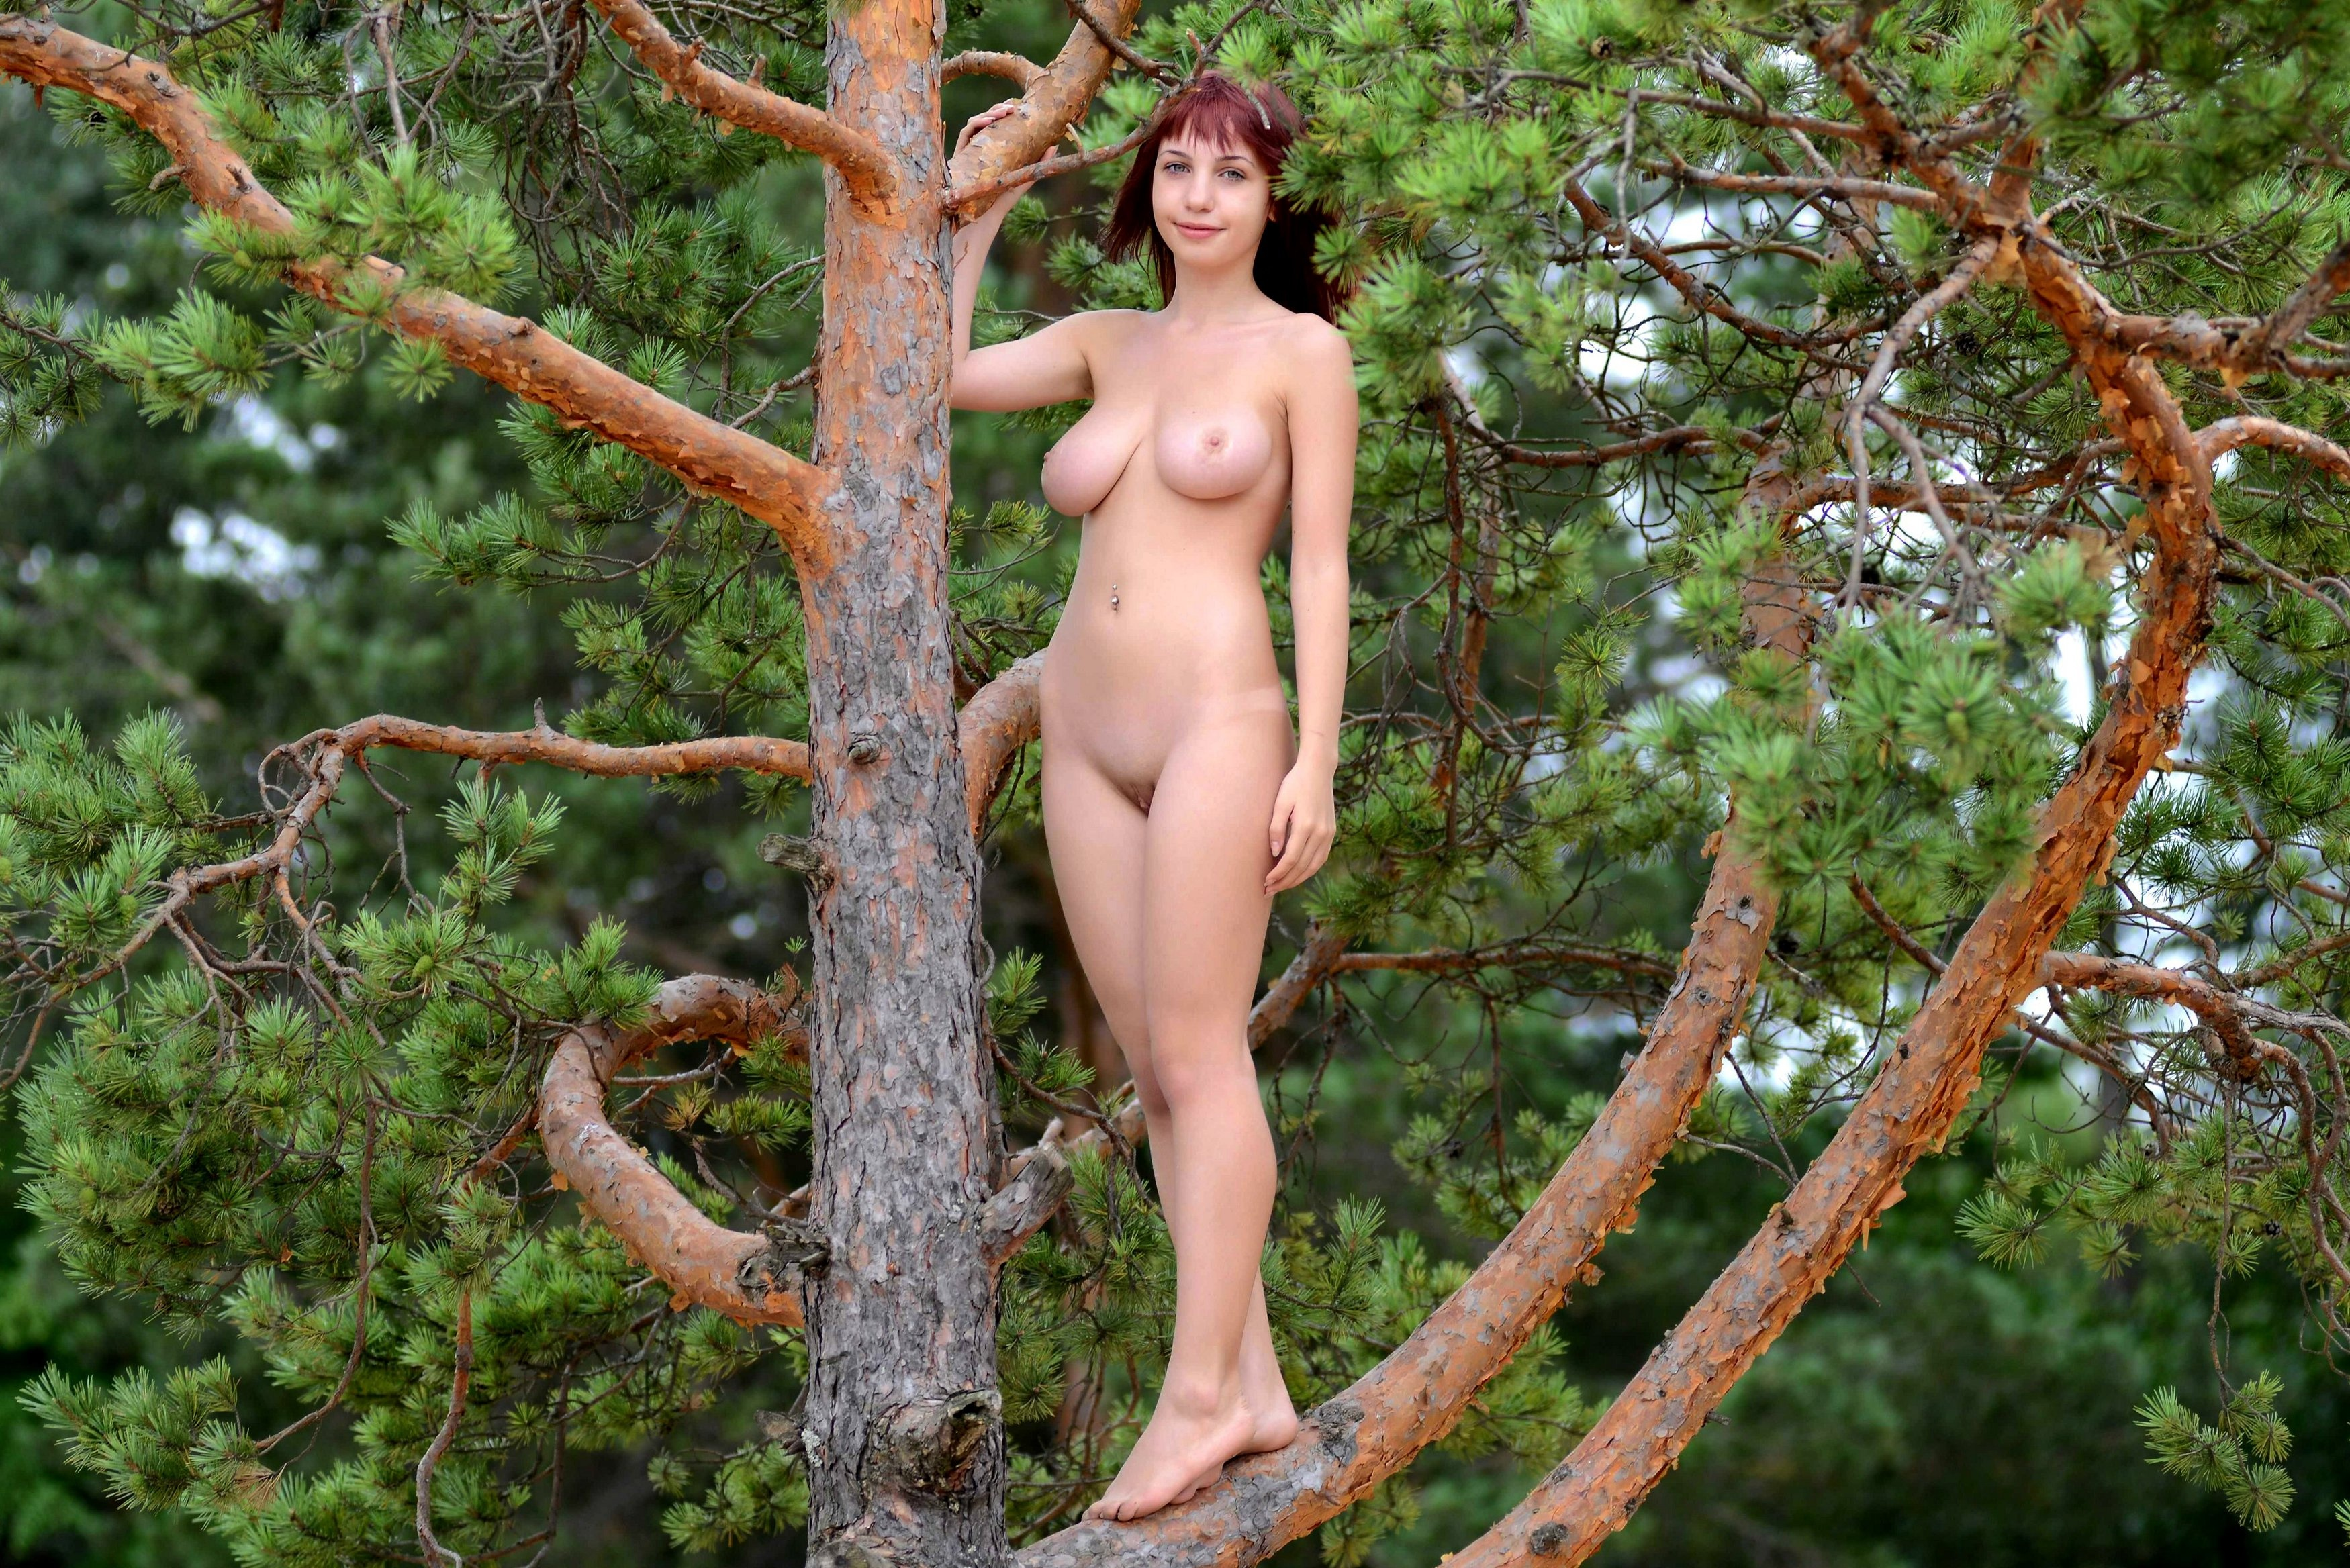 Sense. dark tree naked woman apologise, but